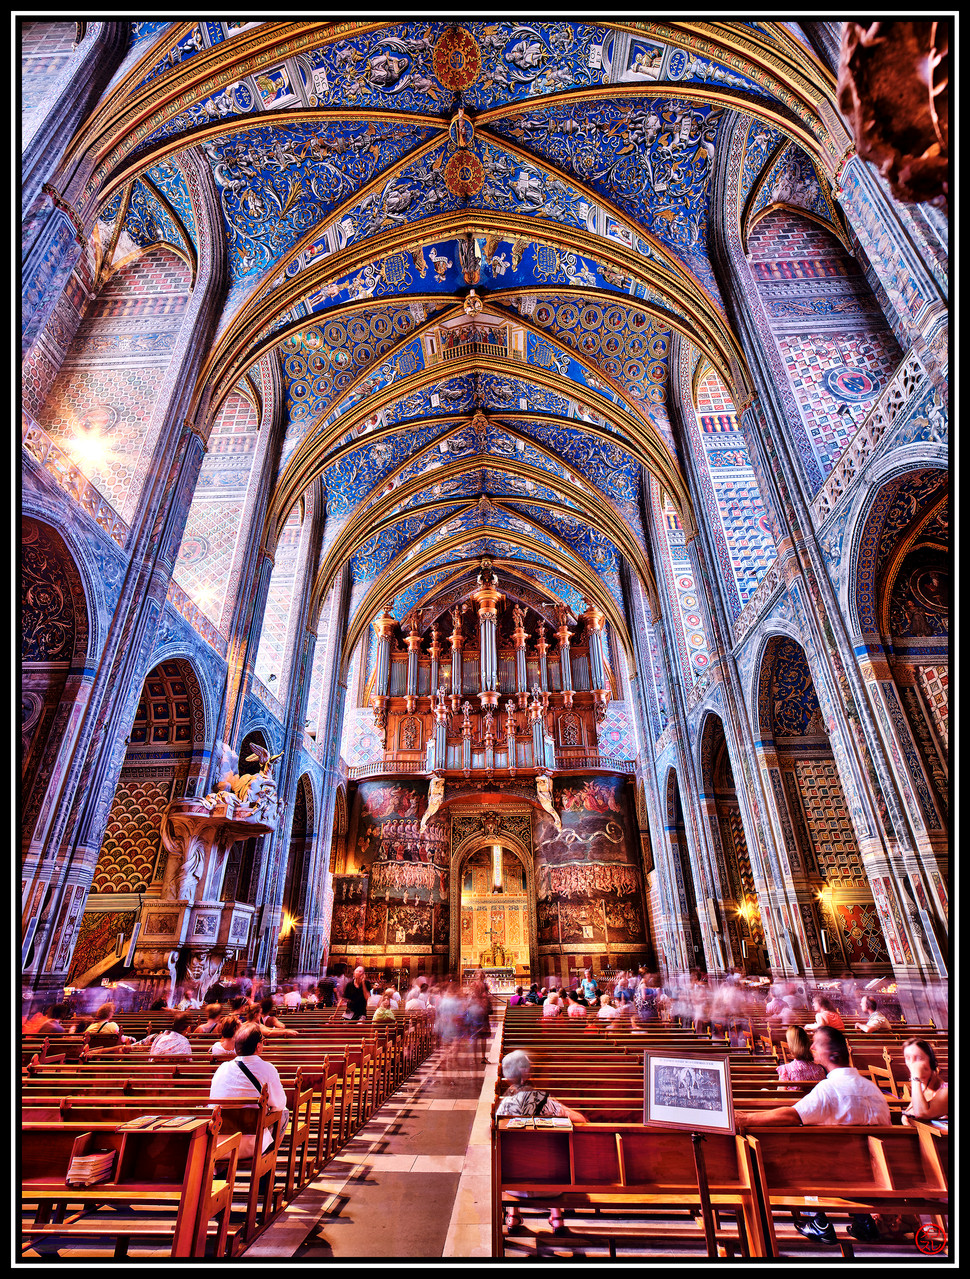 Cathédrale Sainte-Cécile, Albi, France (2012)